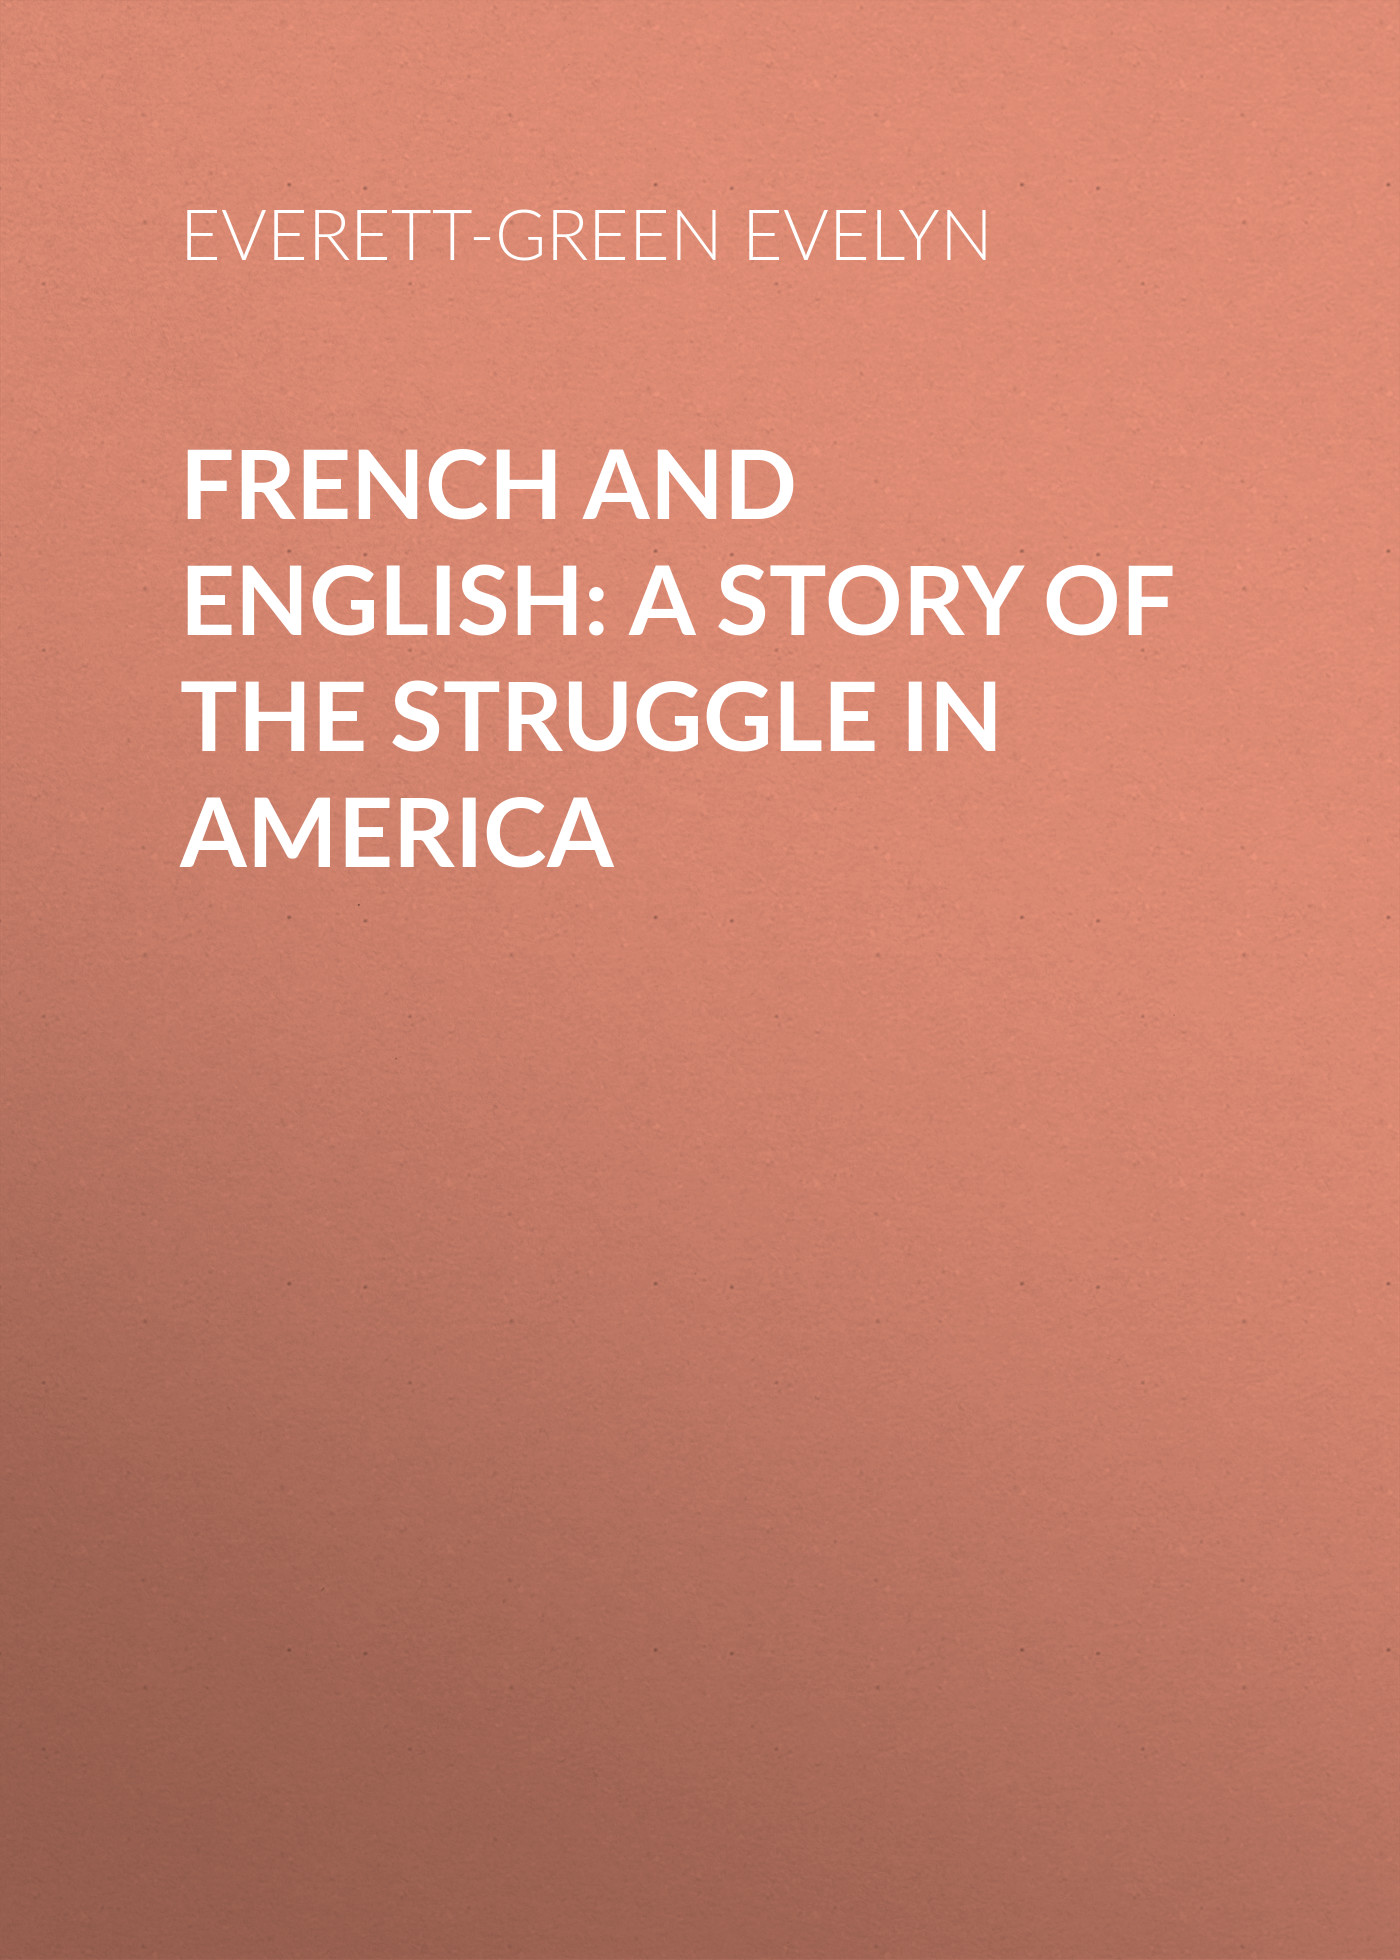 French and English: A Story of the Struggle in America